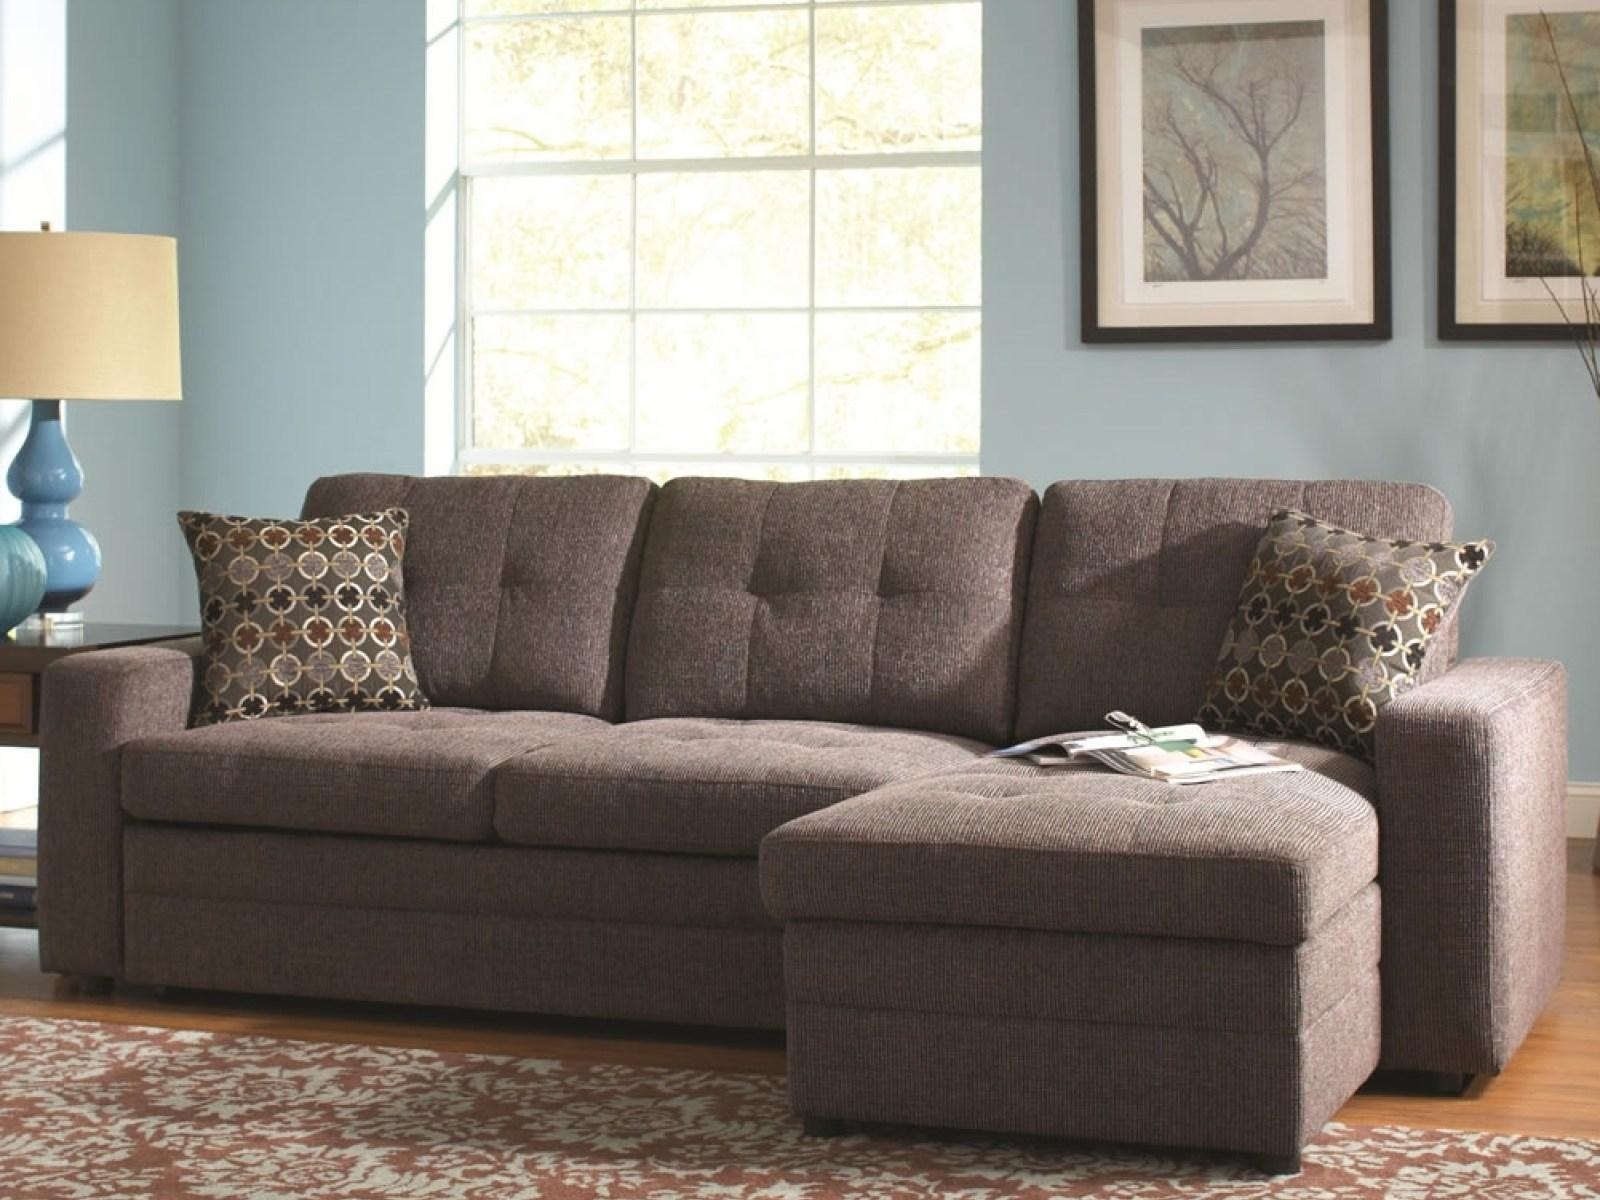 ☆▻ Sofa : 15 Good Looking Reclining Sectional Sofas For Small For Small Sectional Sofas For Small Spaces (View 9 of 20)